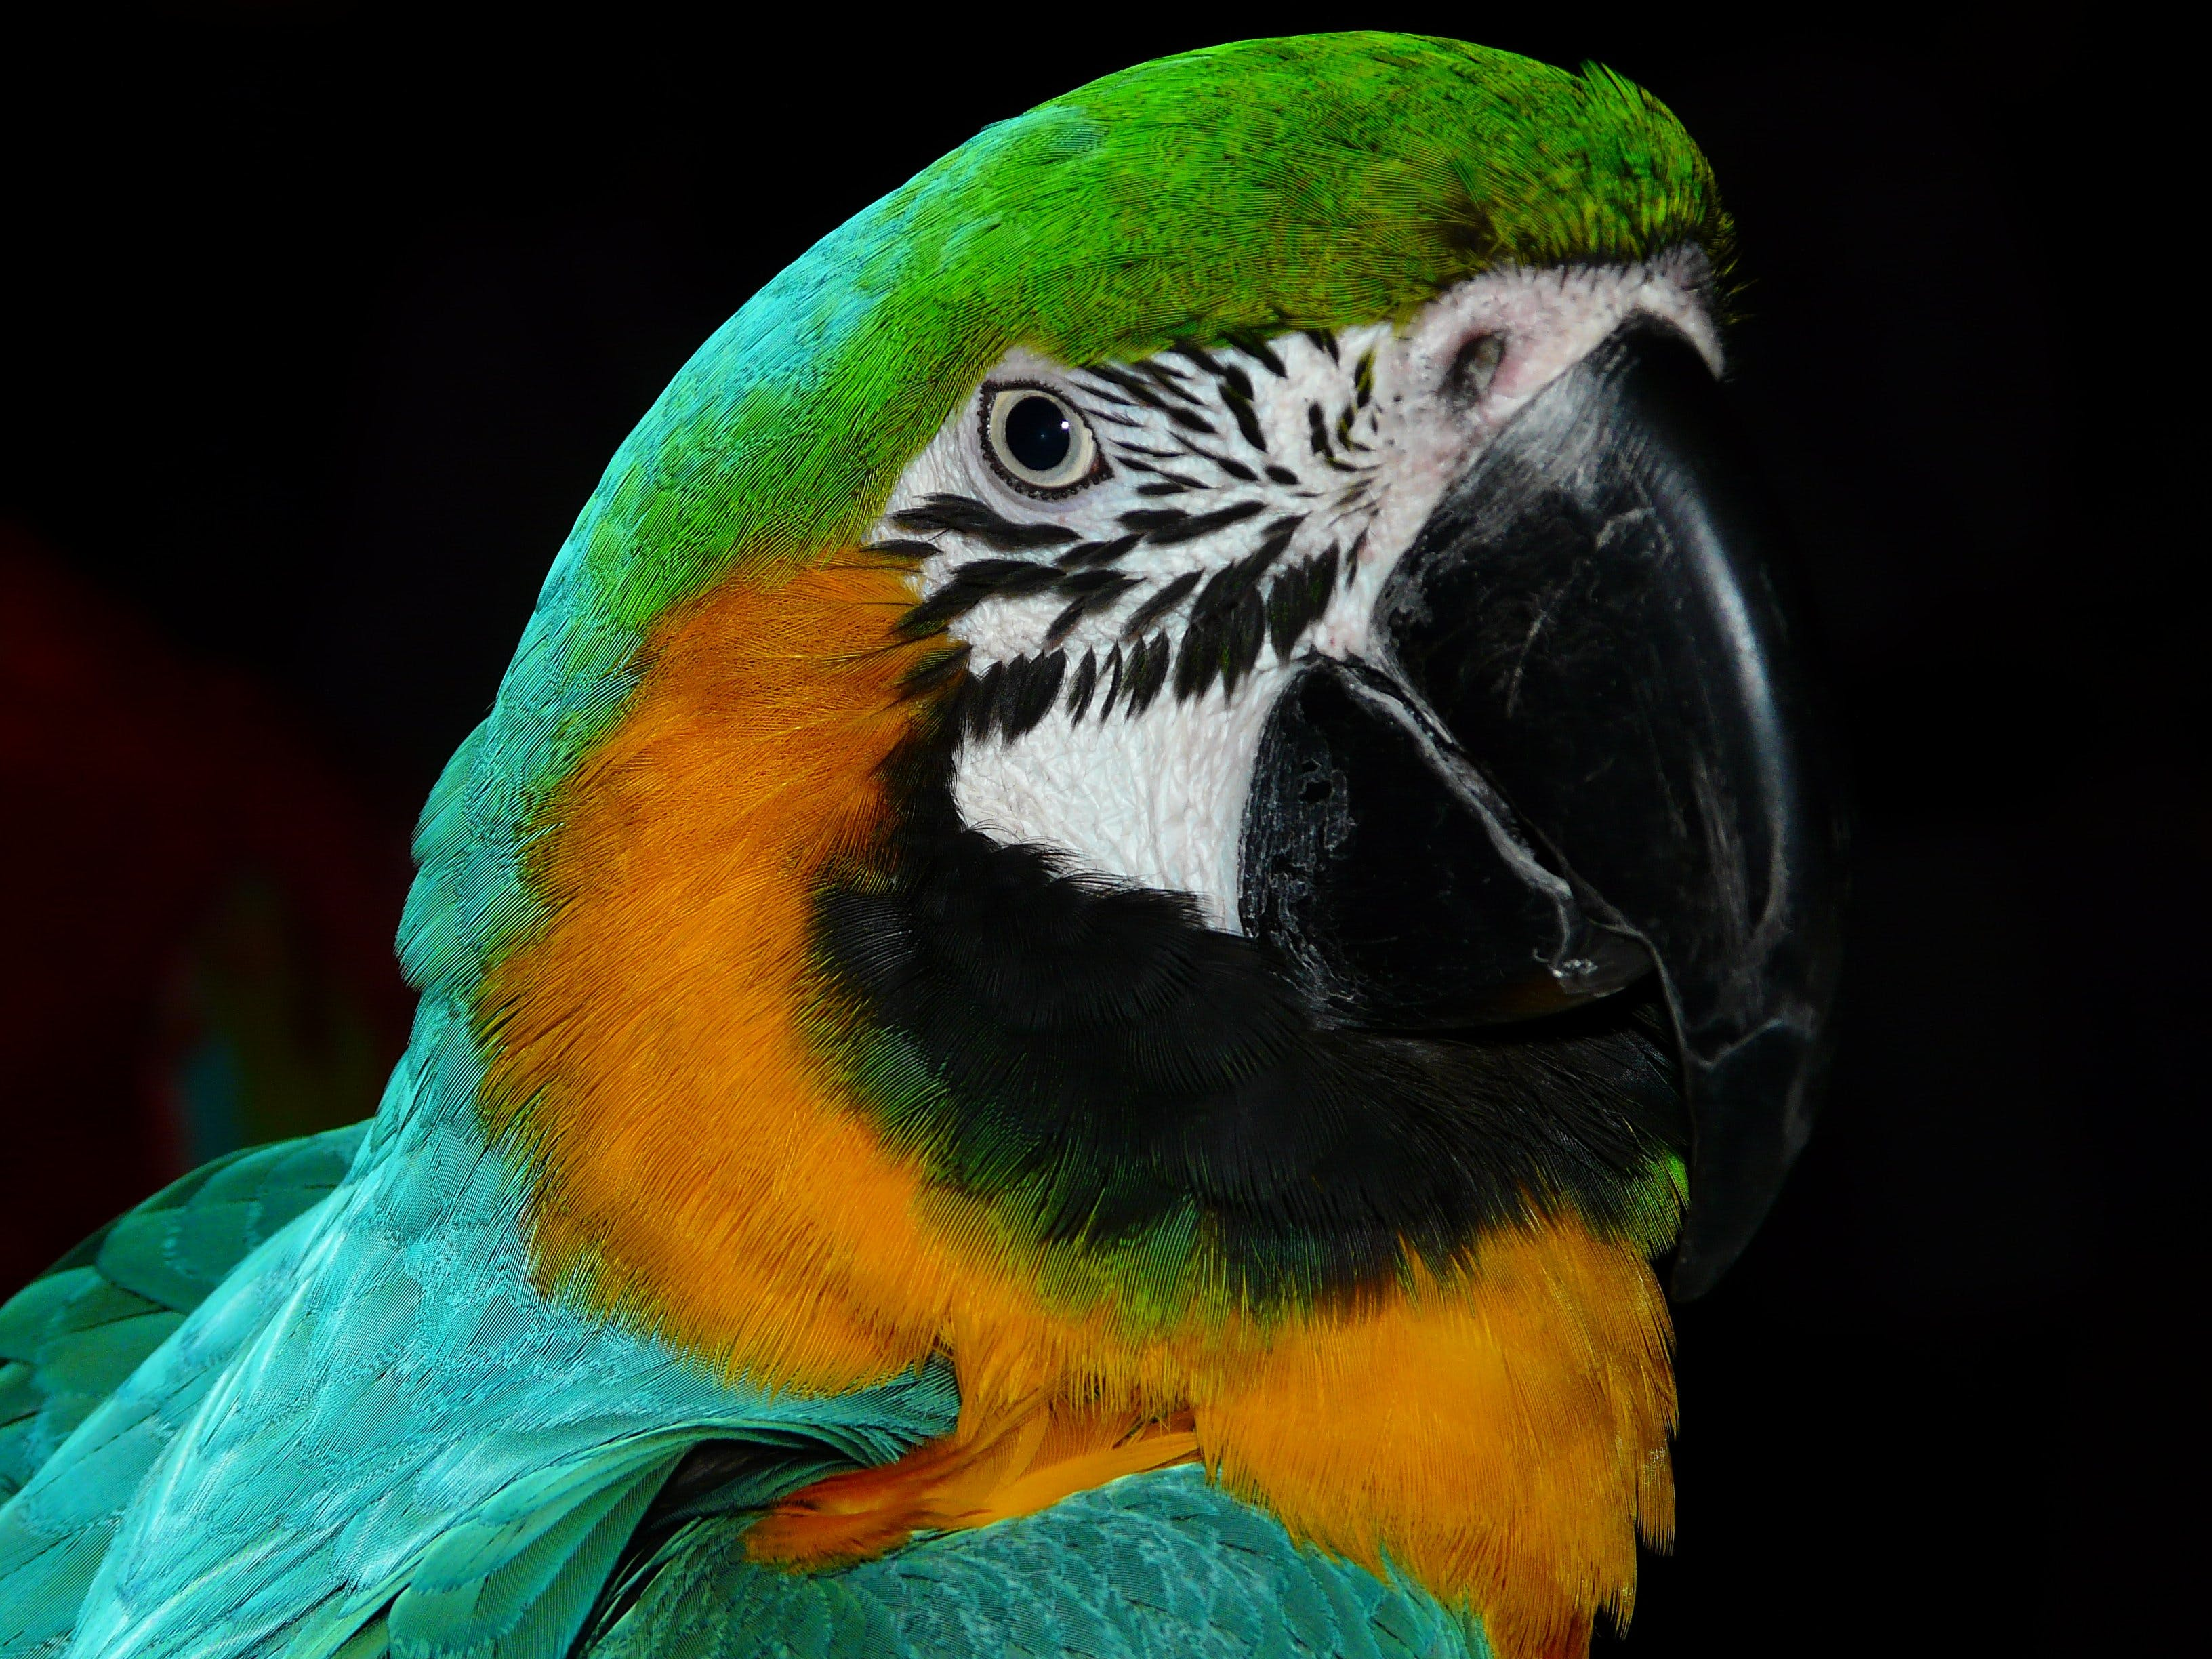 Green Black White Yellow and Teal Parrot